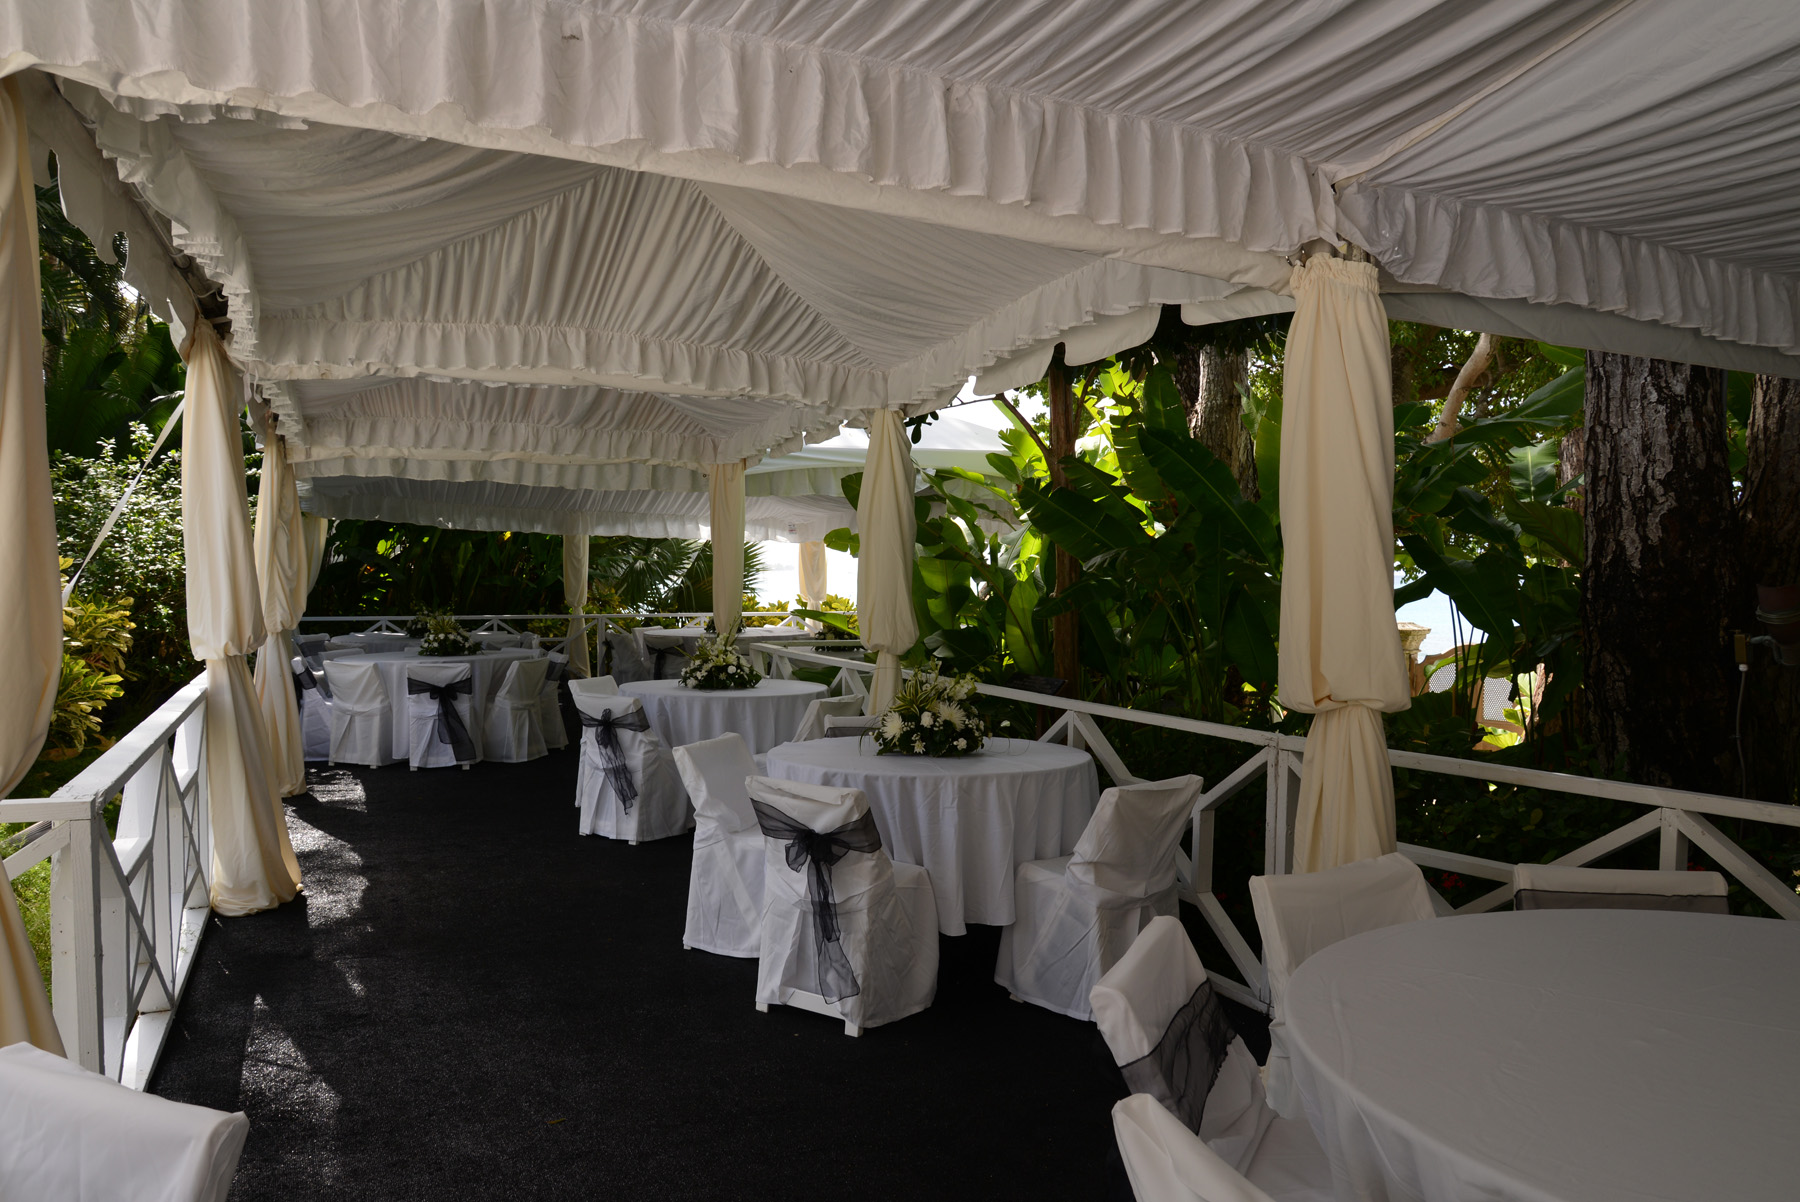 Tents For Walkways Or Canopies In Tents At Ellco Rentals